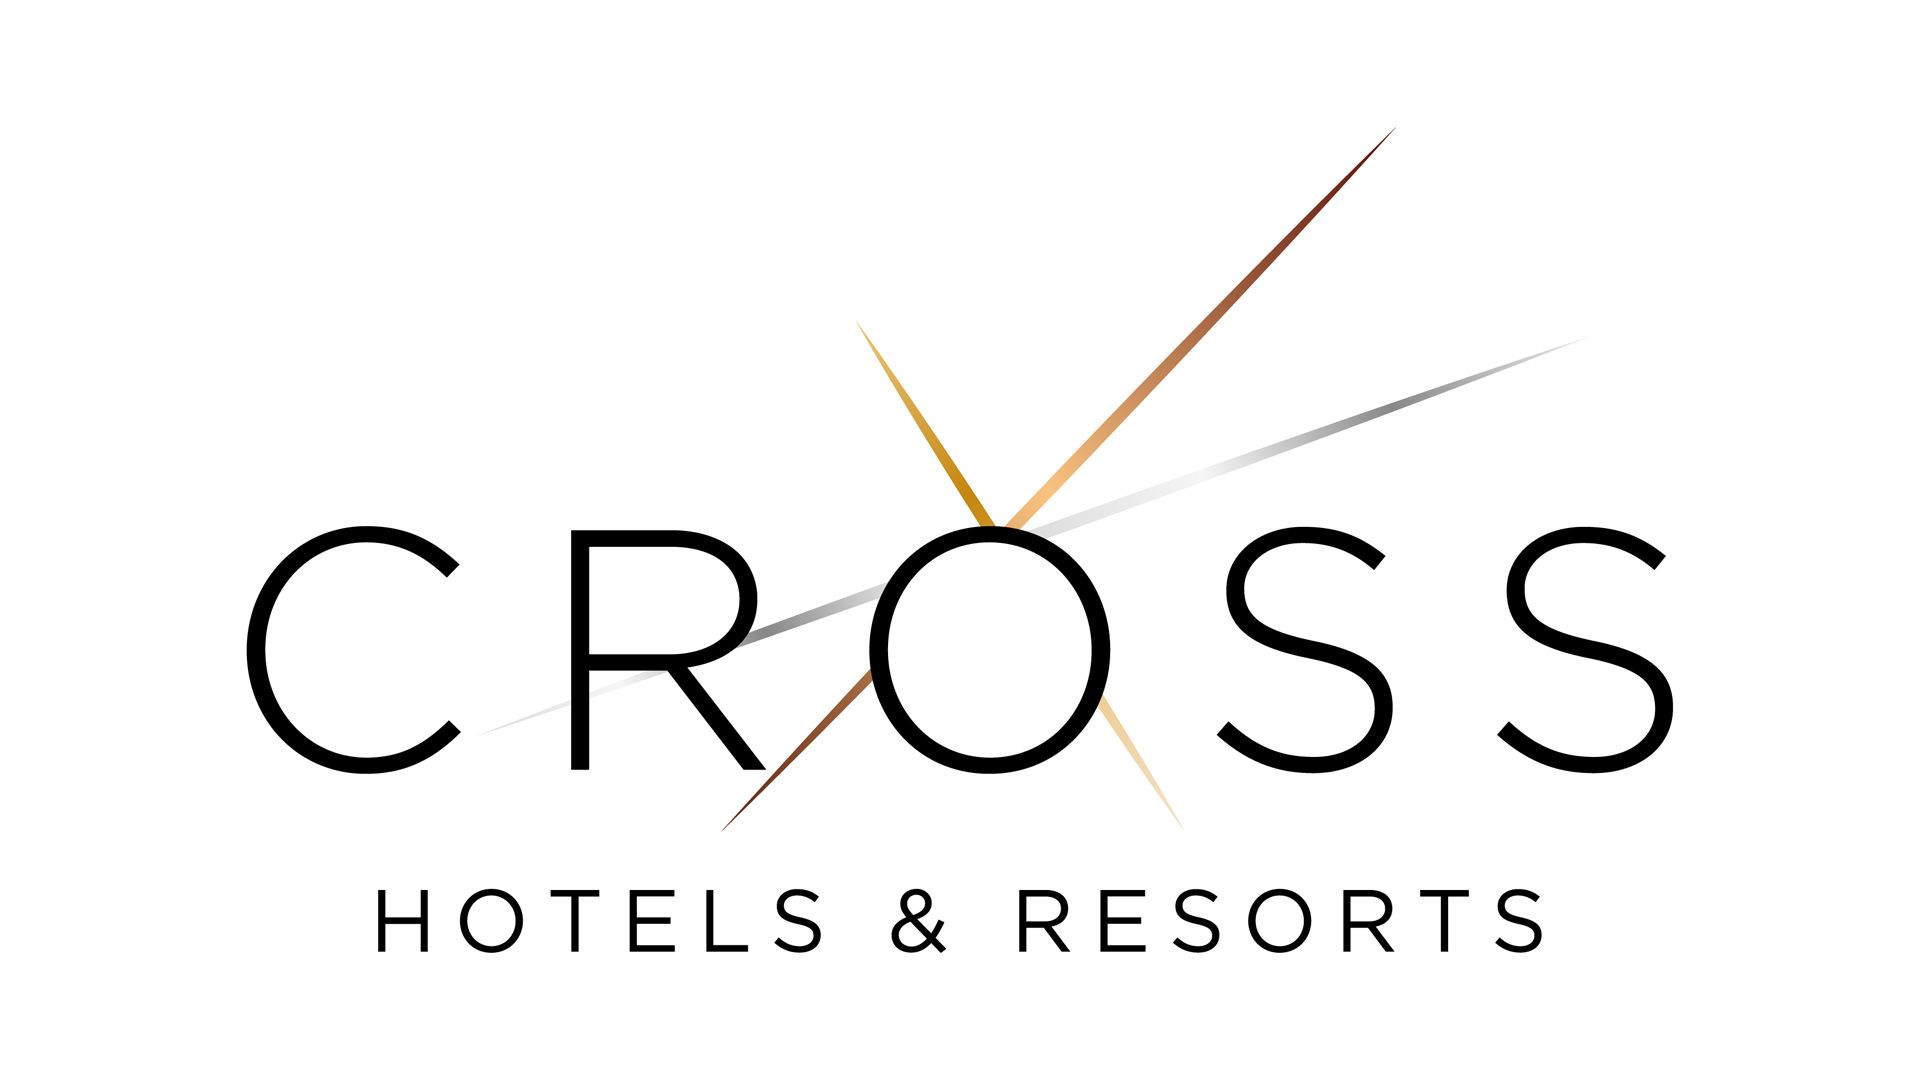 BHMA Now Known as Cross Hotels and Resorts Under Exciting New Strategy